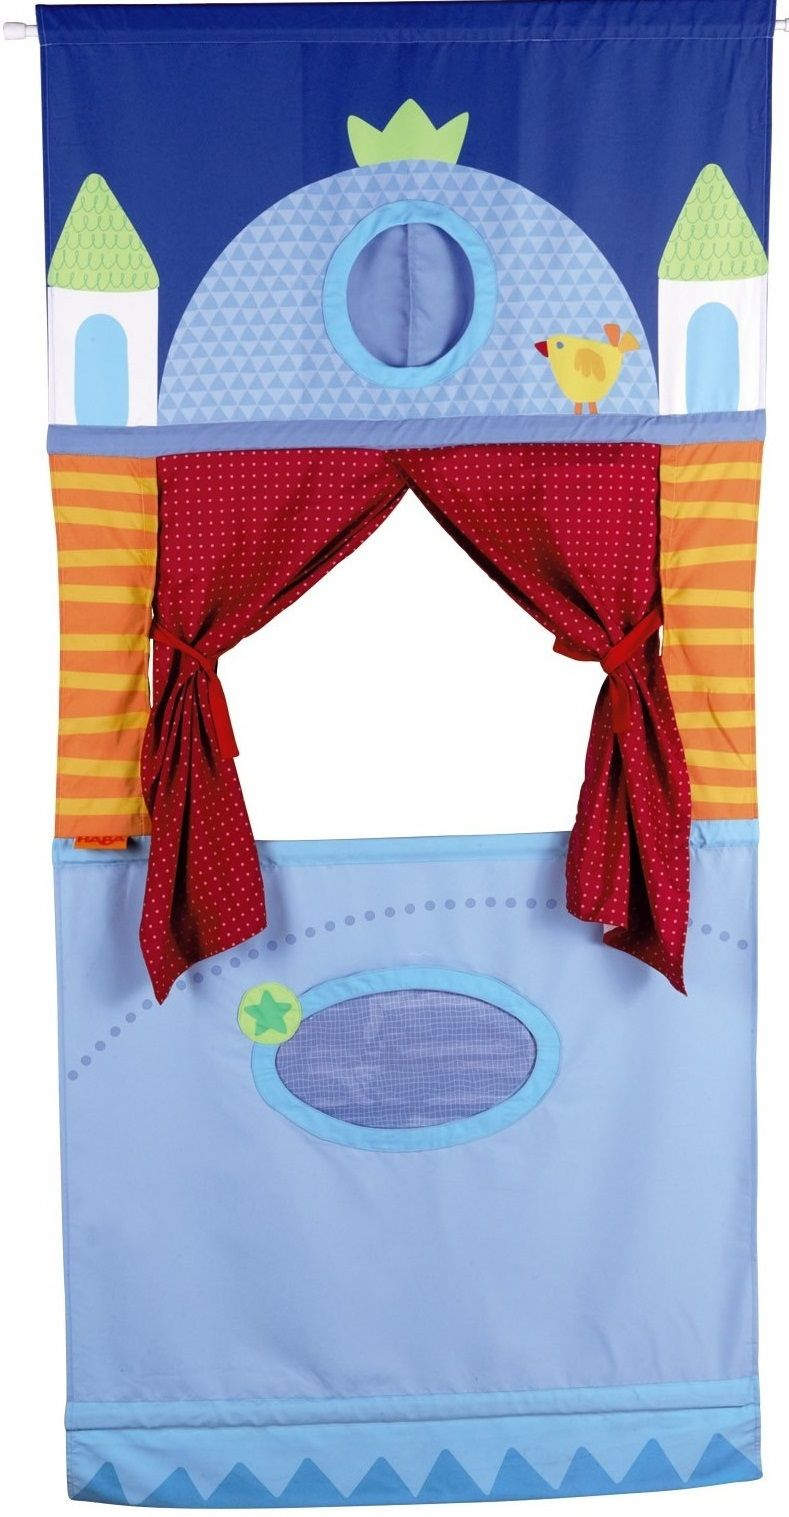 Doorway Puppet Theater This whimsical set can adjust to fit in